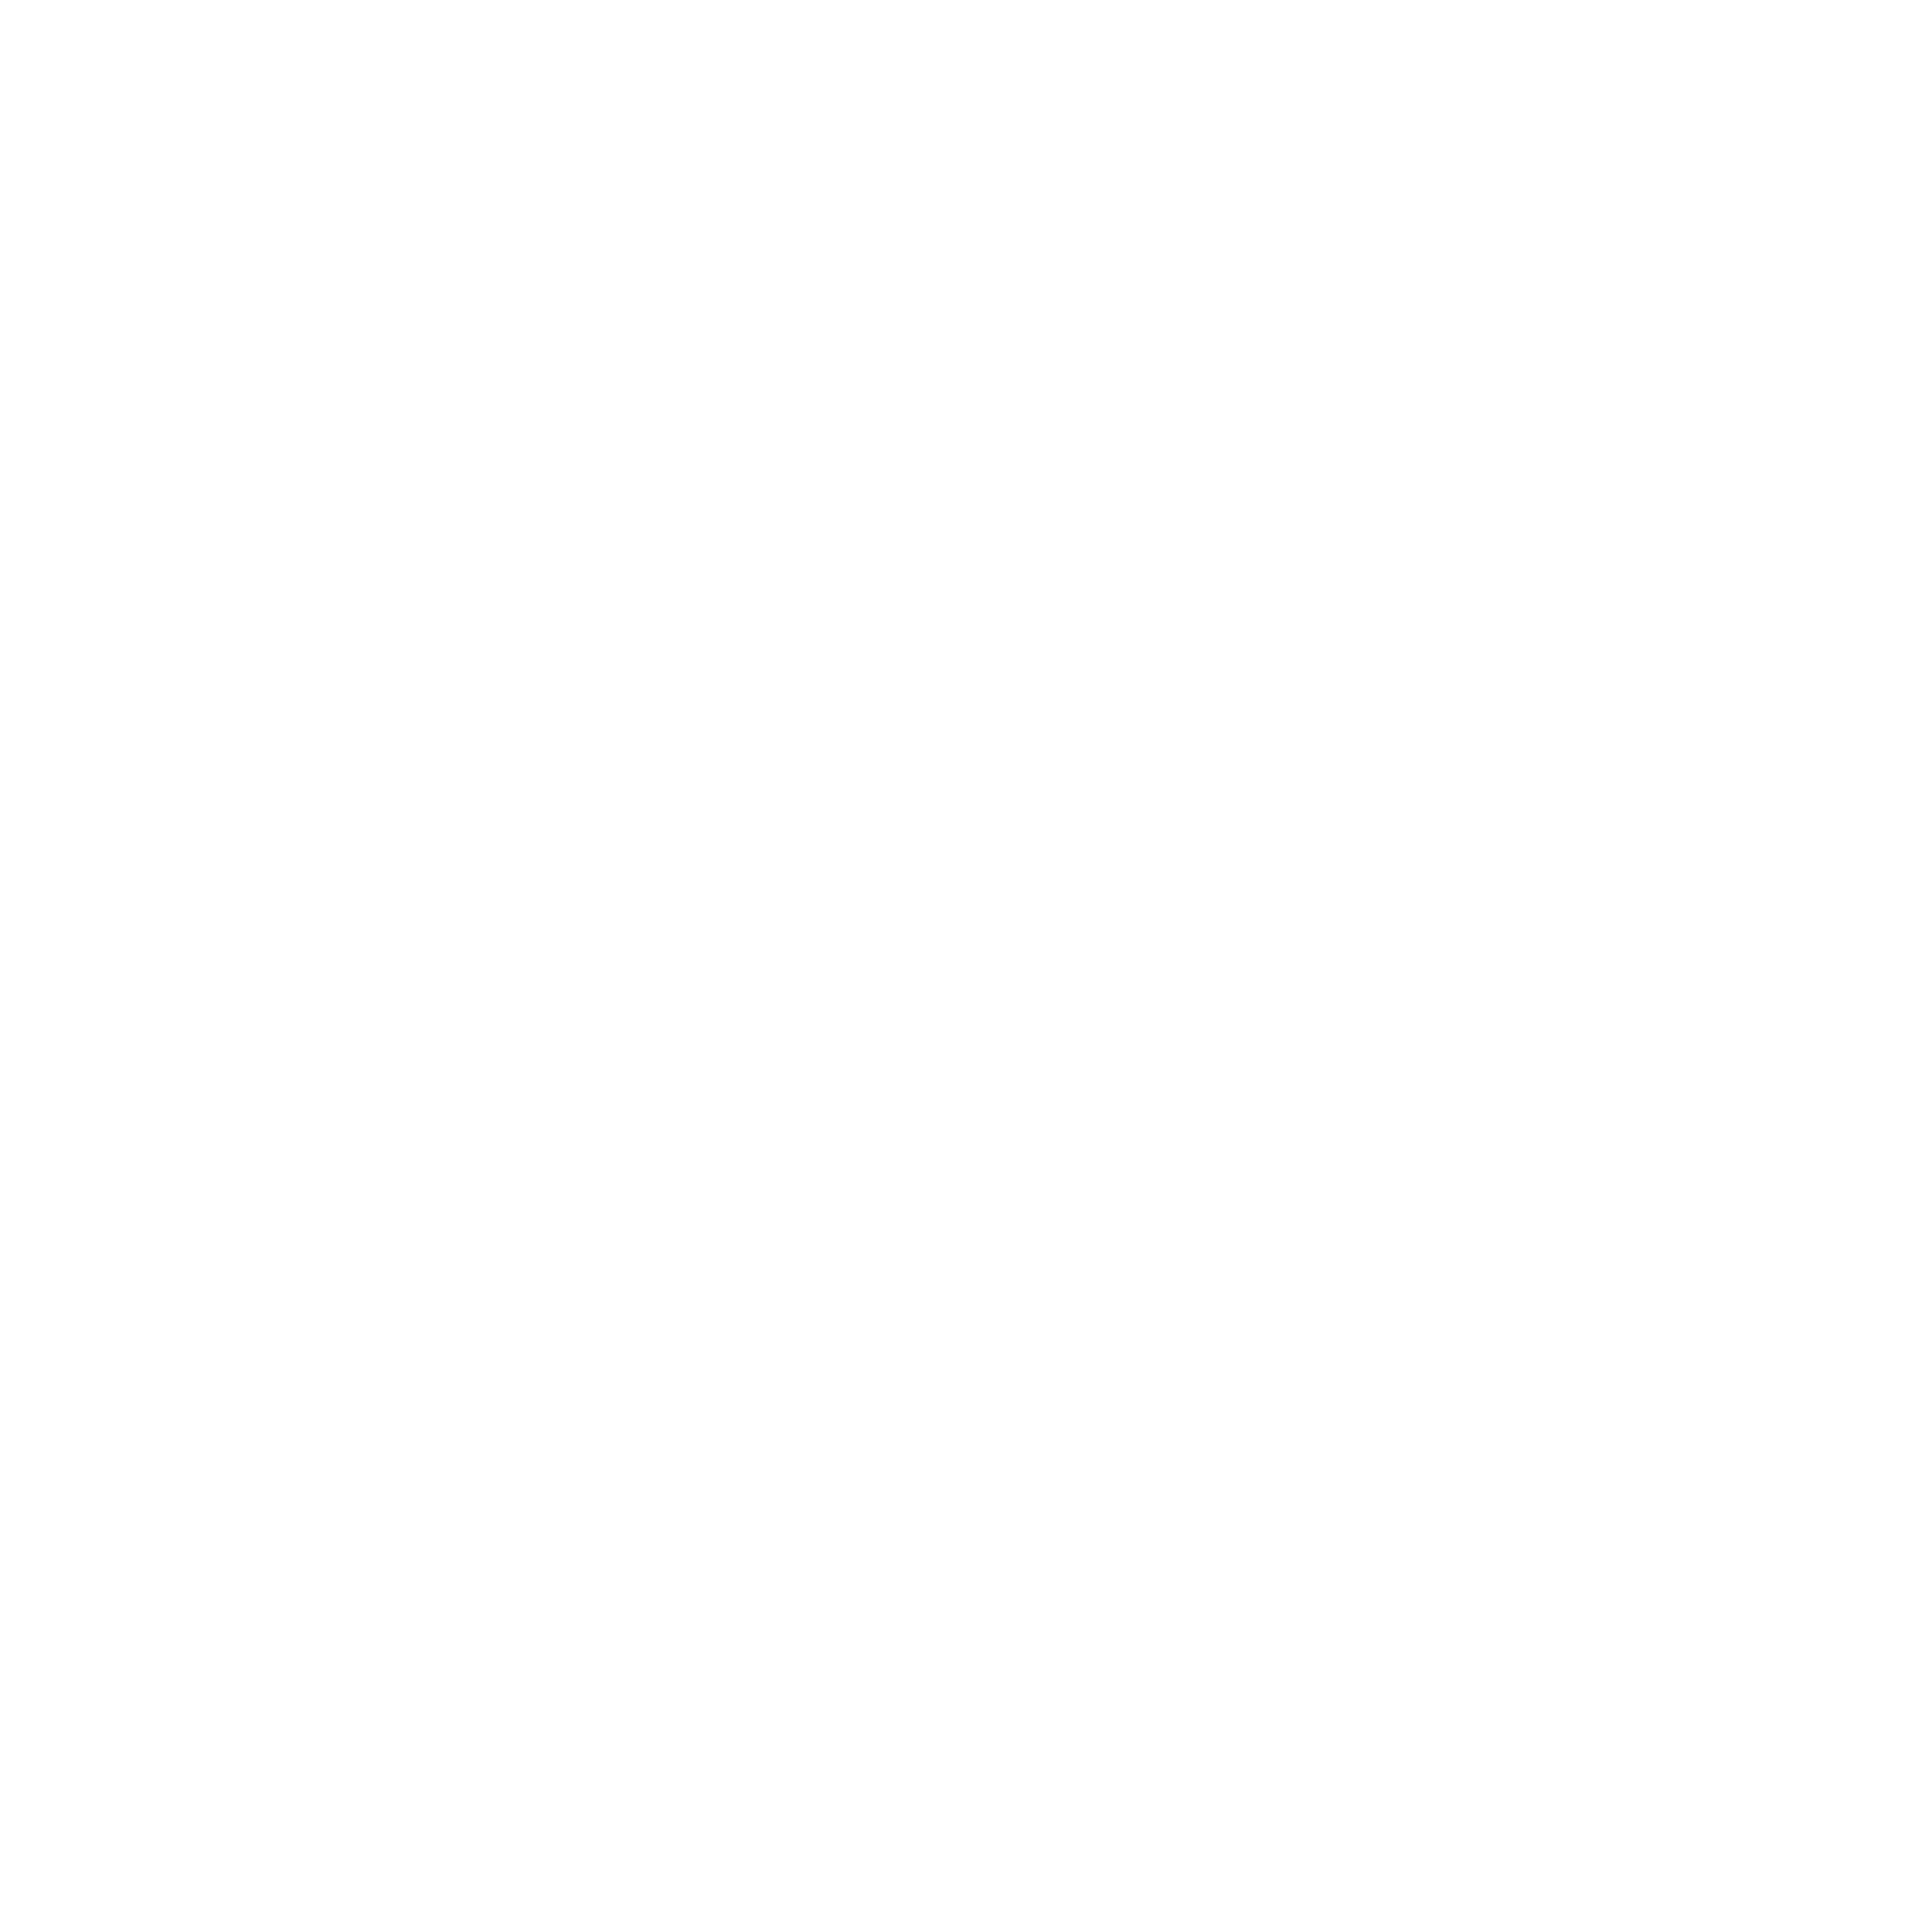 Youth Action Wiltshire | Working for the Future